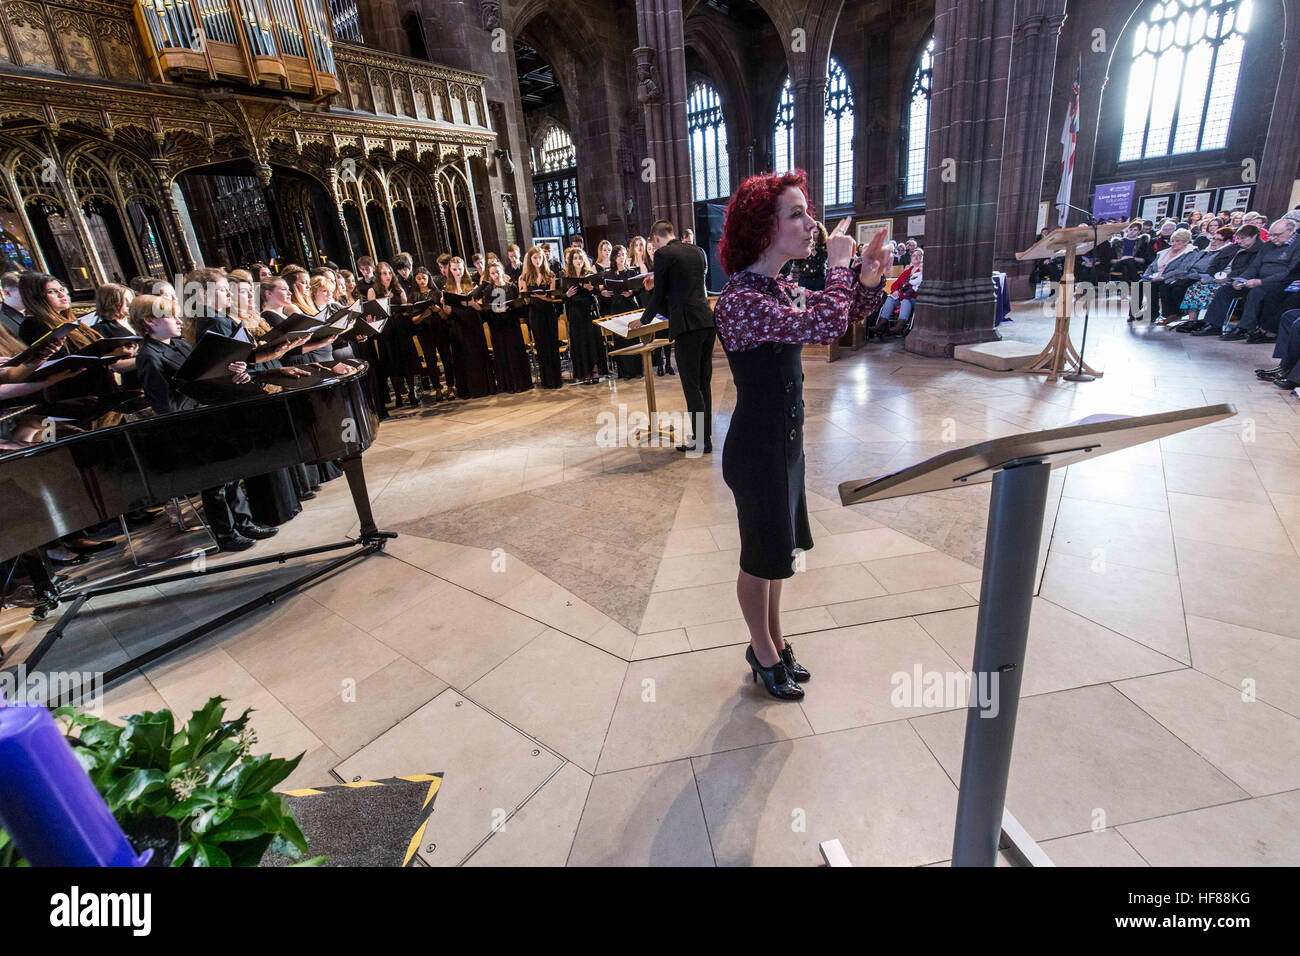 Interior of Manchester Cathedral during a service. A sign language interpreter - Stock Image